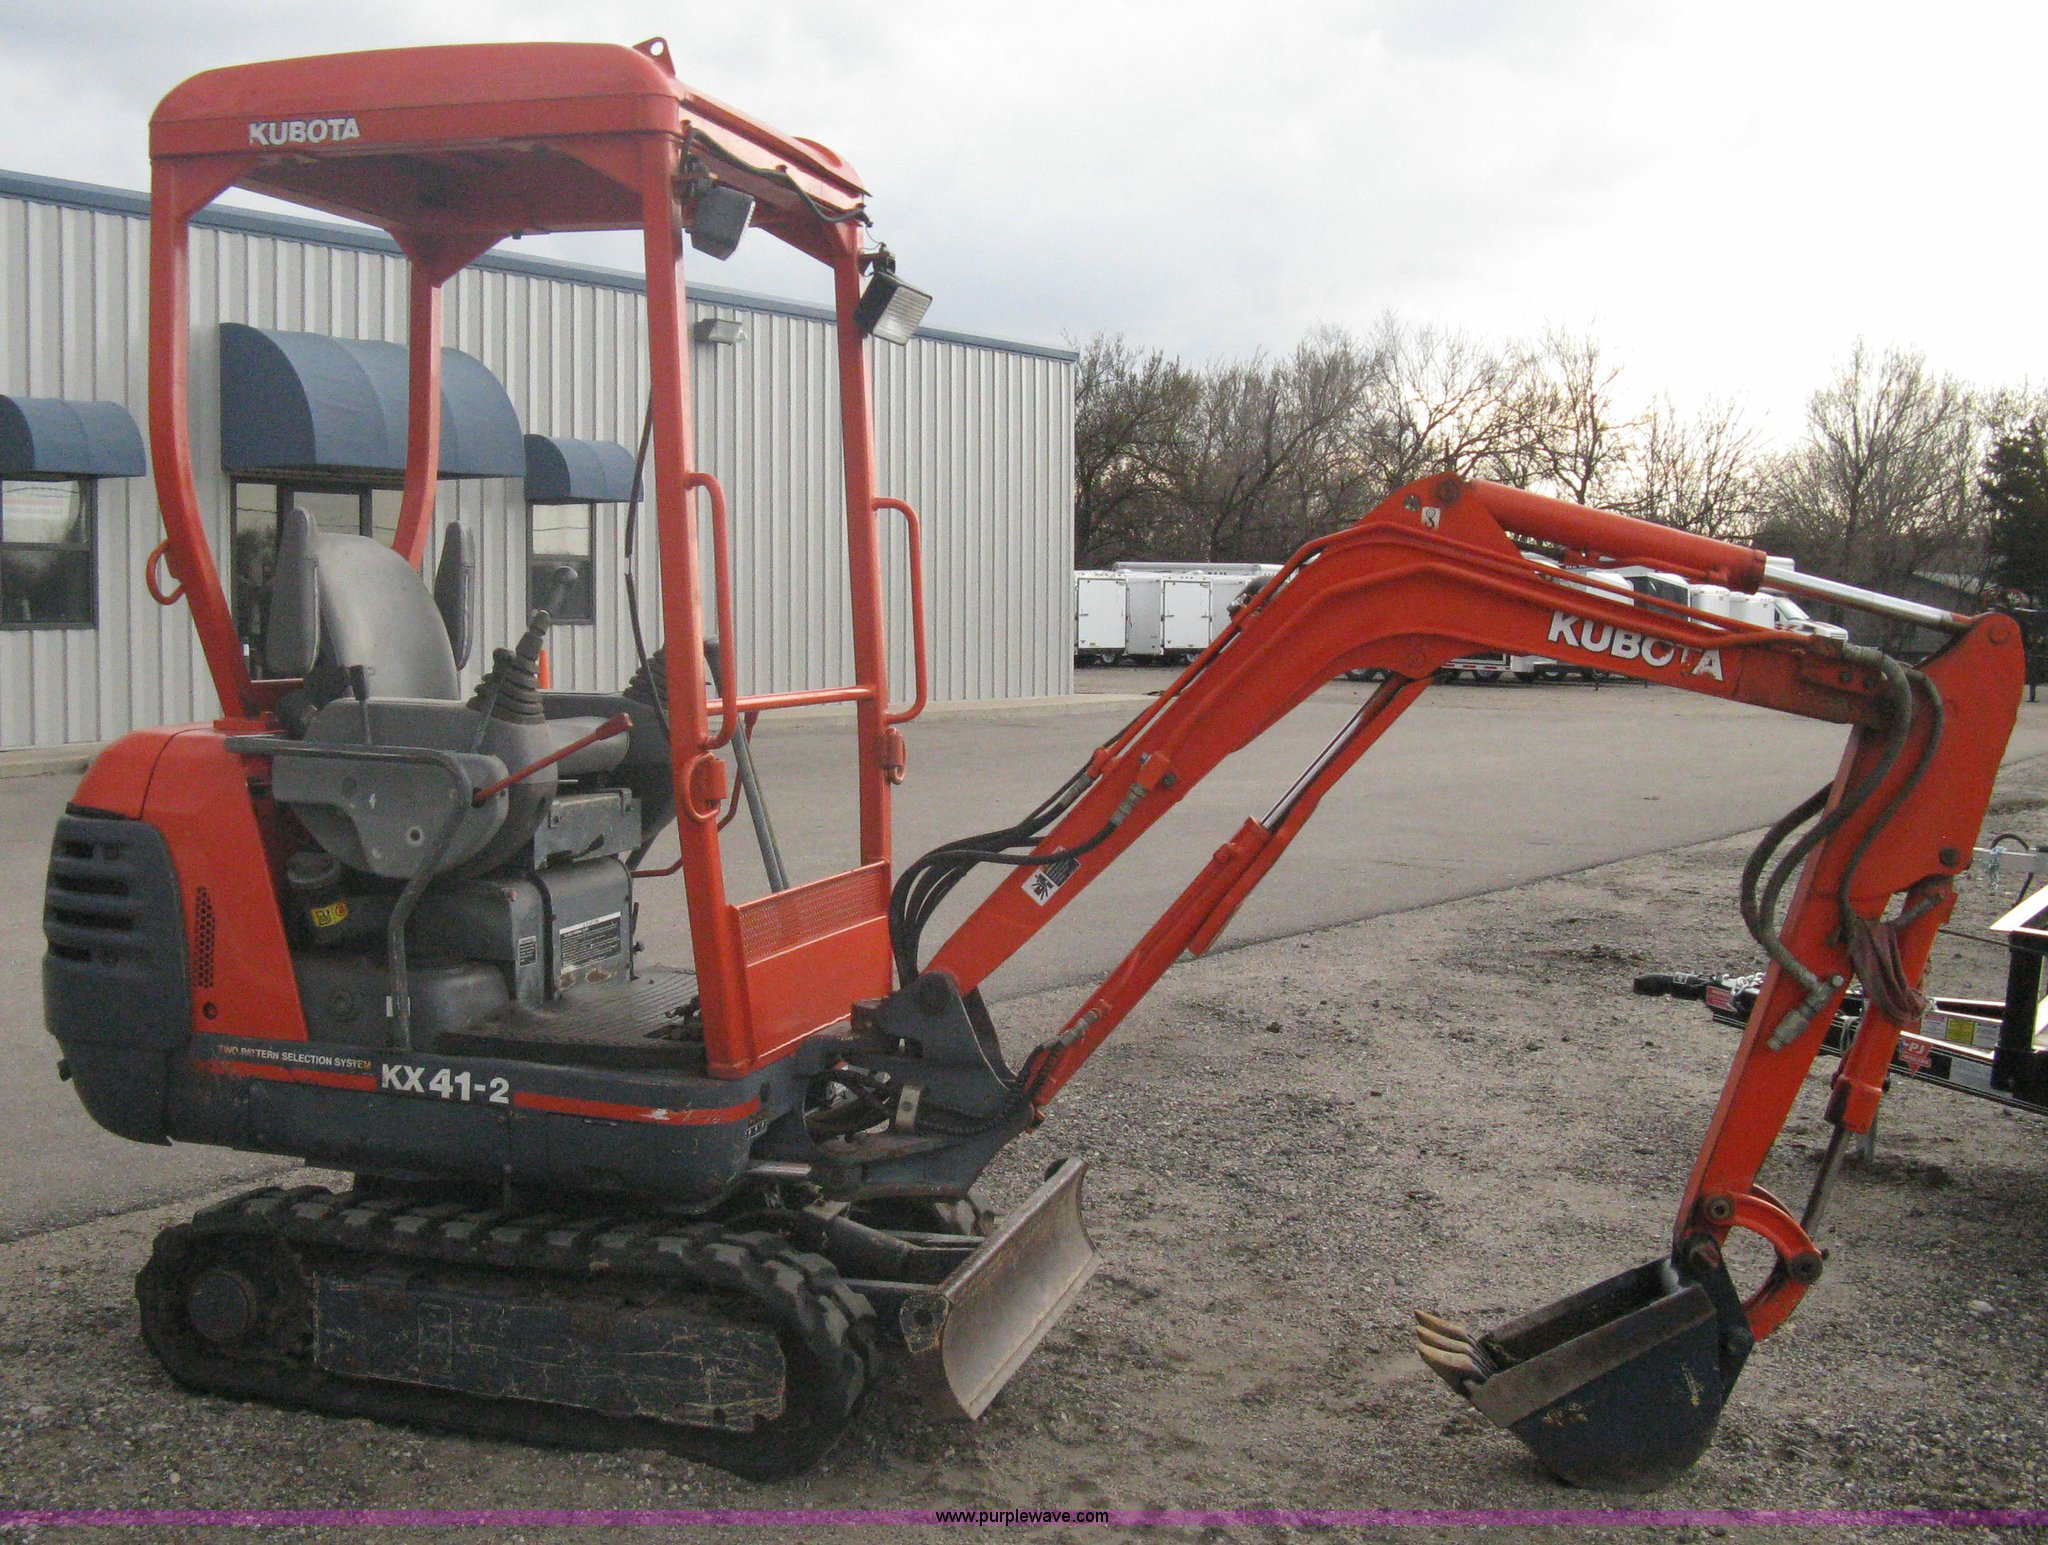 Surprising Kubota Kx41 2 Compact Excavator Item A6116 Sold March 2 Wiring 101 Breceaxxcnl